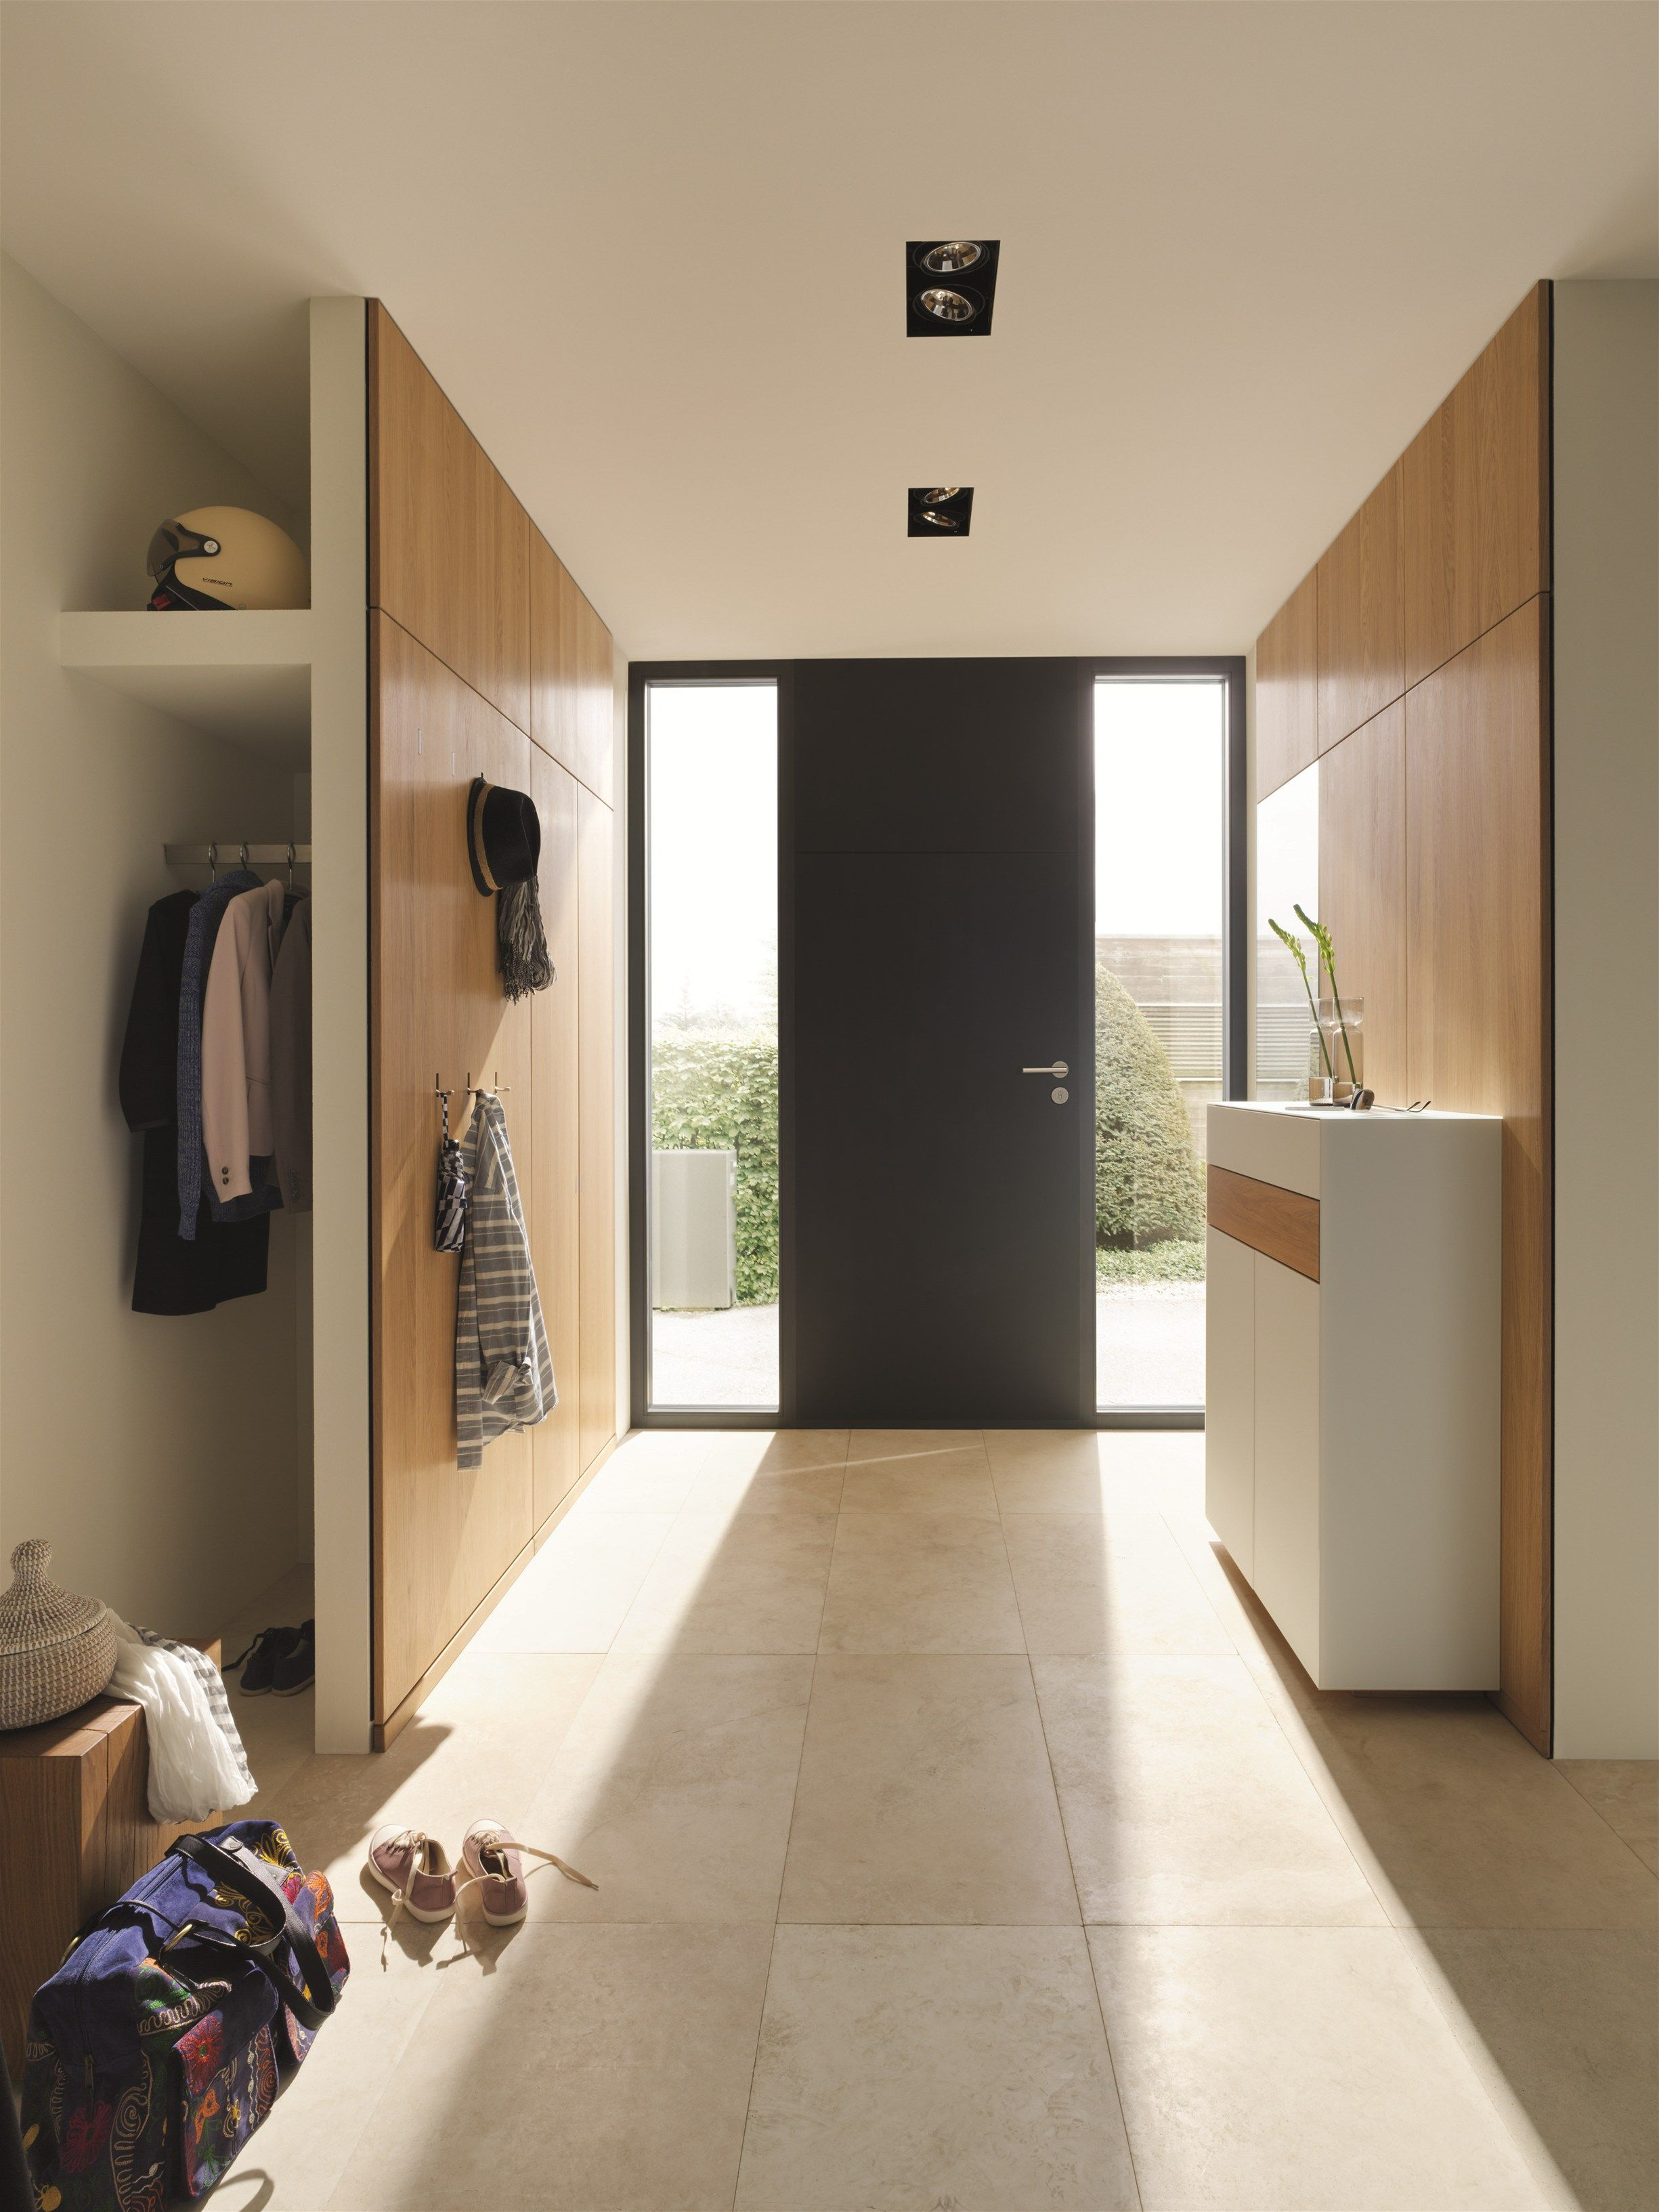 Flurgarderobe Modern Wooden Hallway Unit Cubus Pure Cubus Pure Collection By Team7